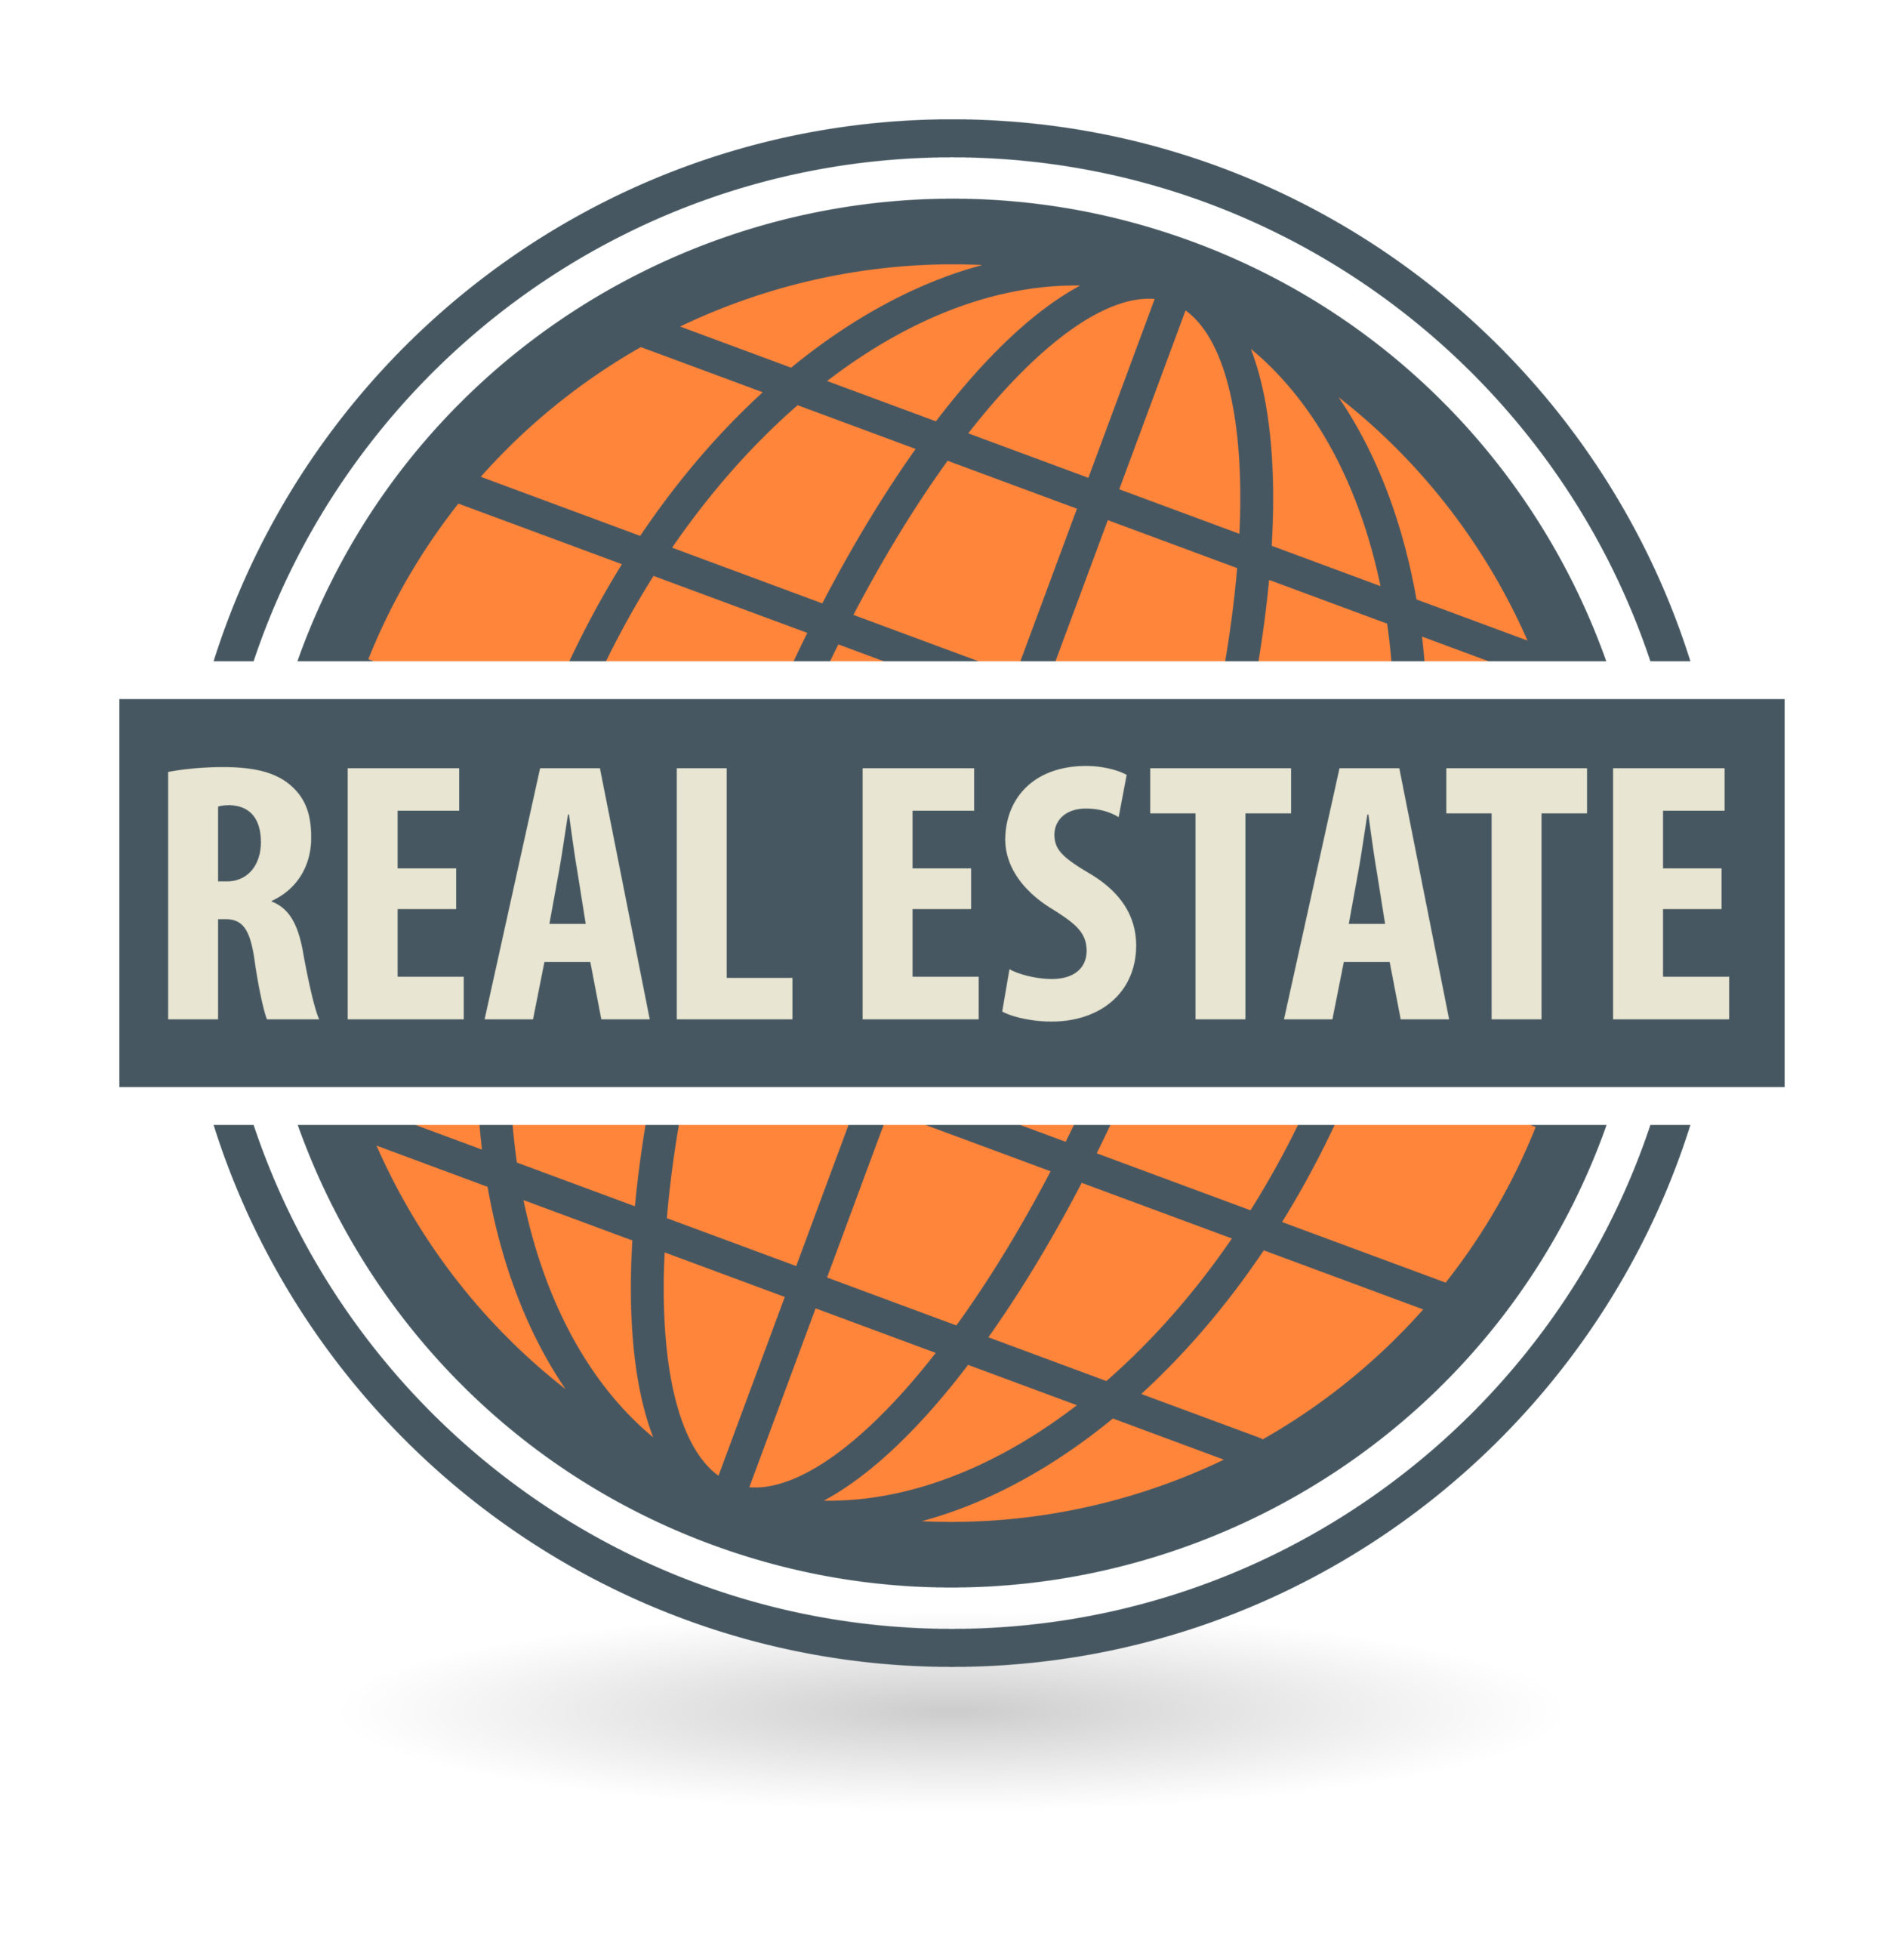 Real Estate SEO Tips